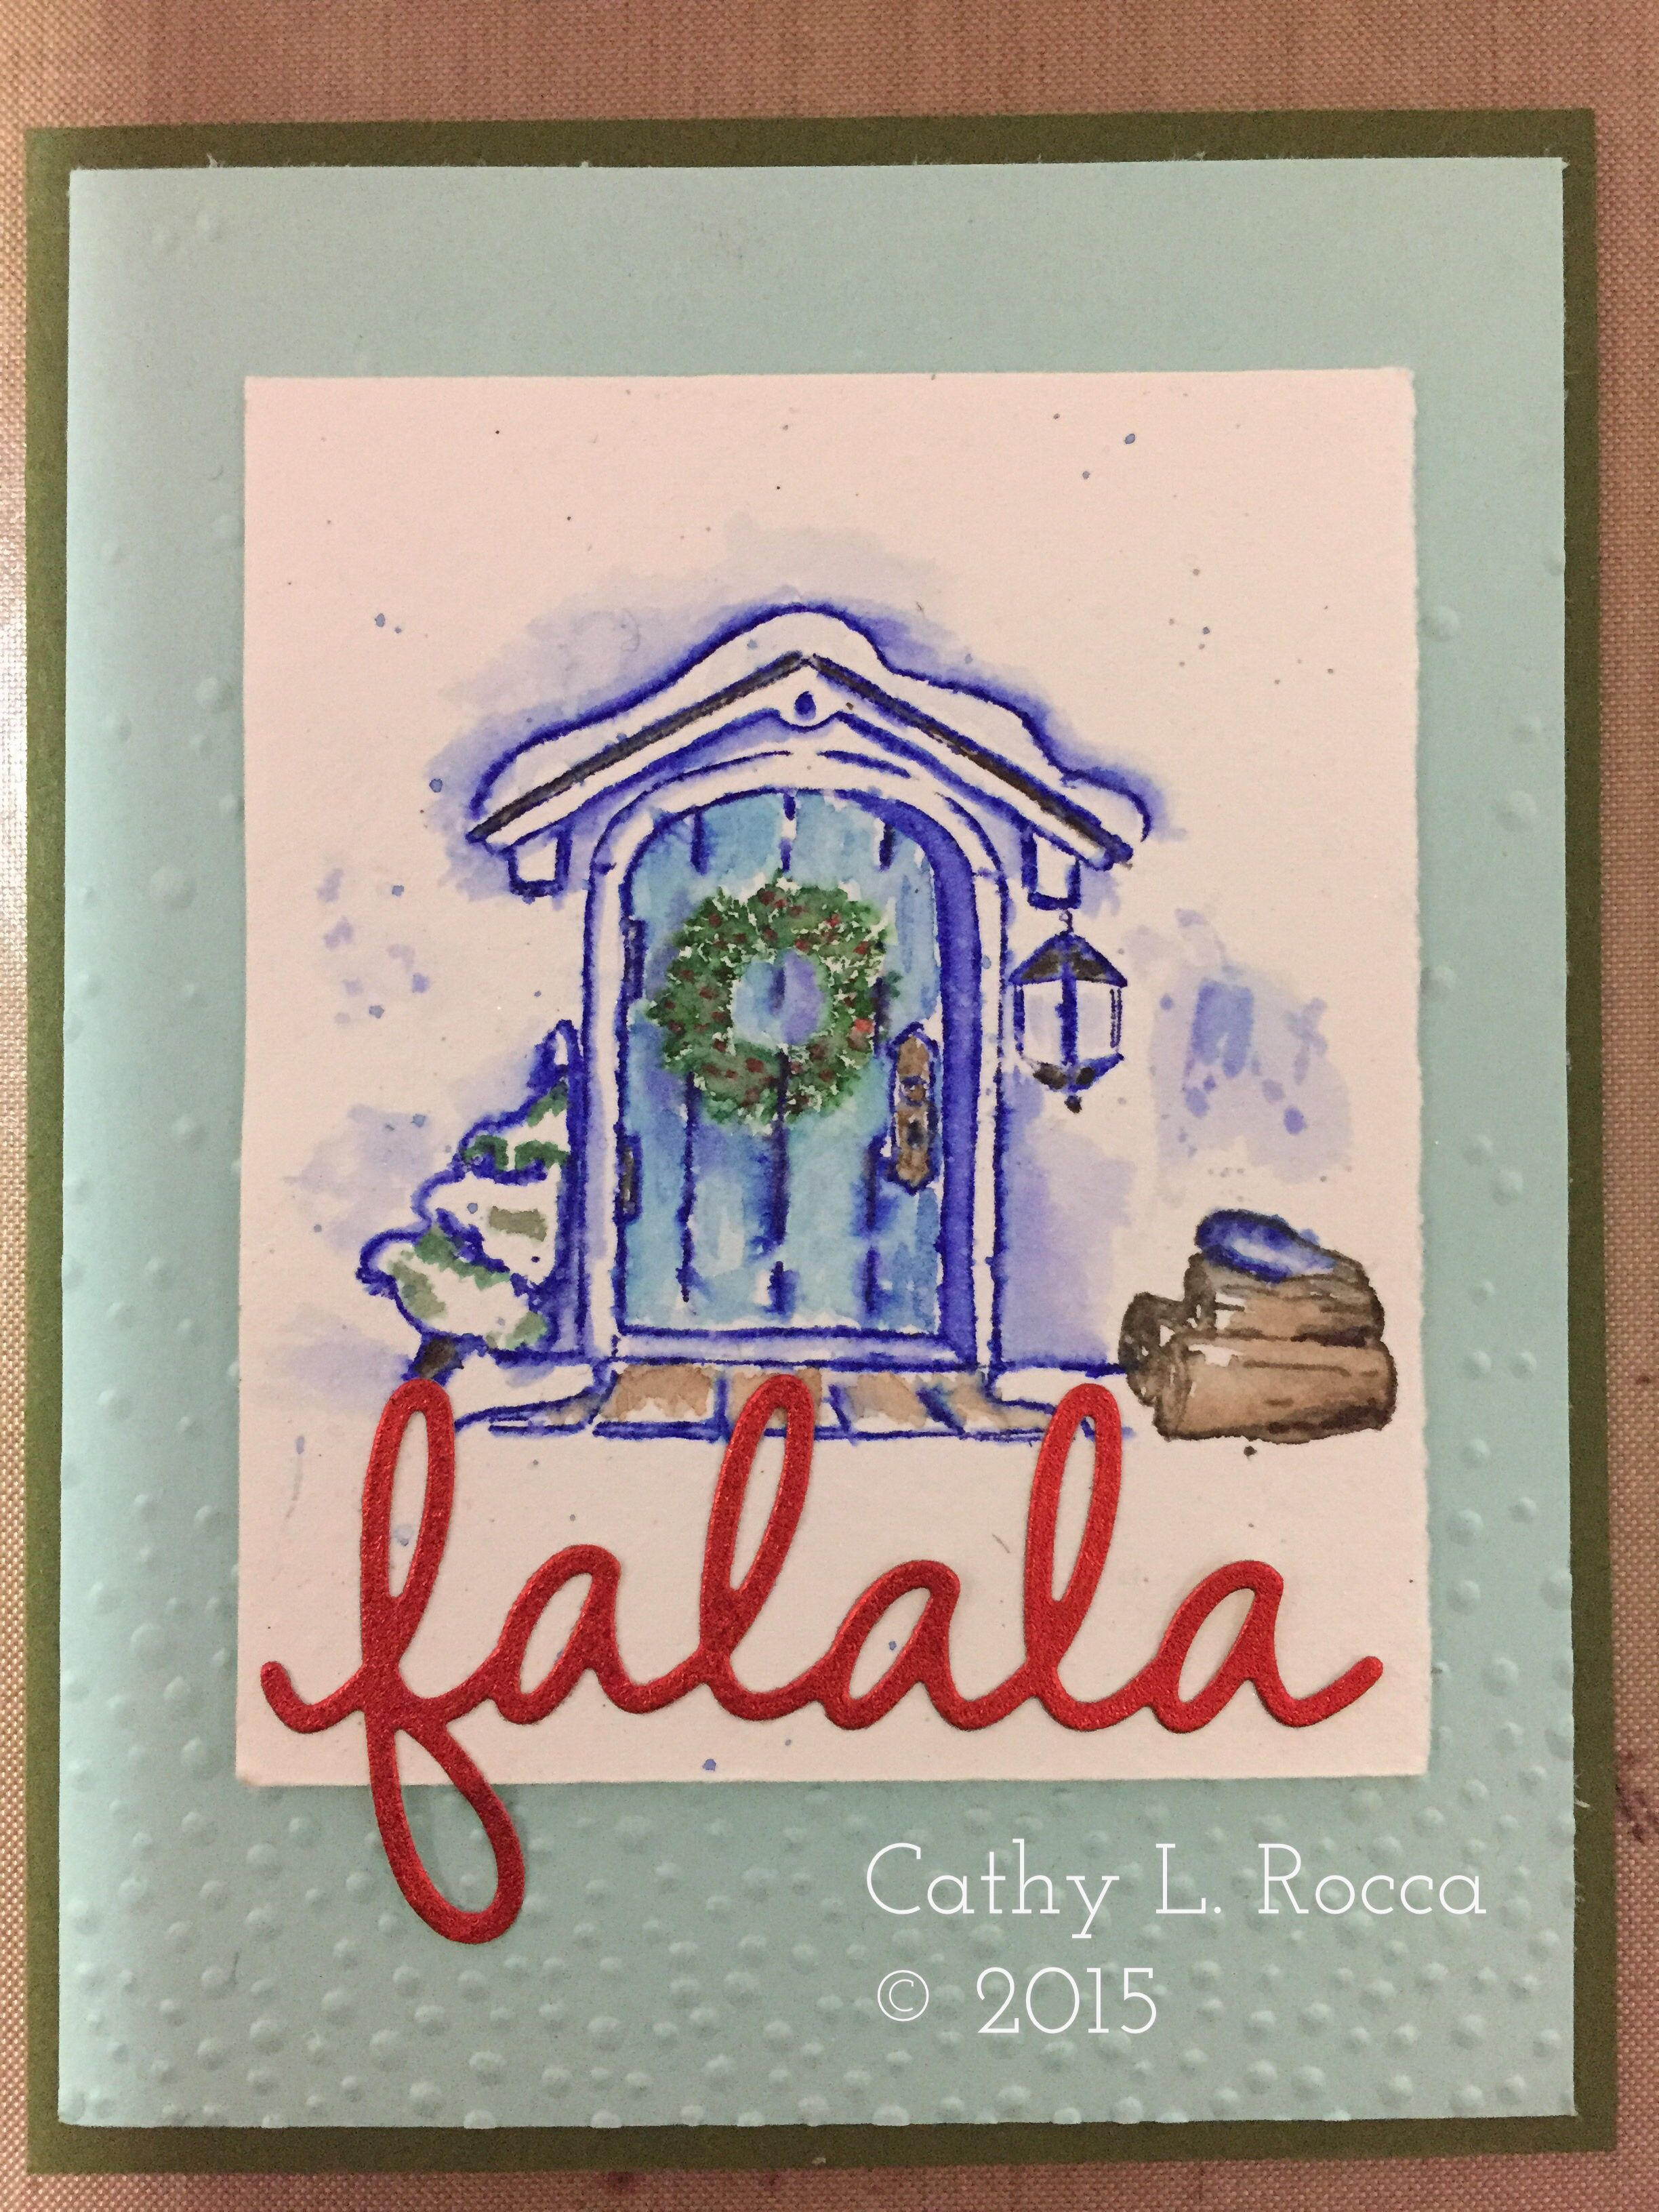 Falala by Cathy L. Rocca Art Impressions Wooden Door Stampin Up Seasonal Frame thinlits and Softly Falling embossing folder